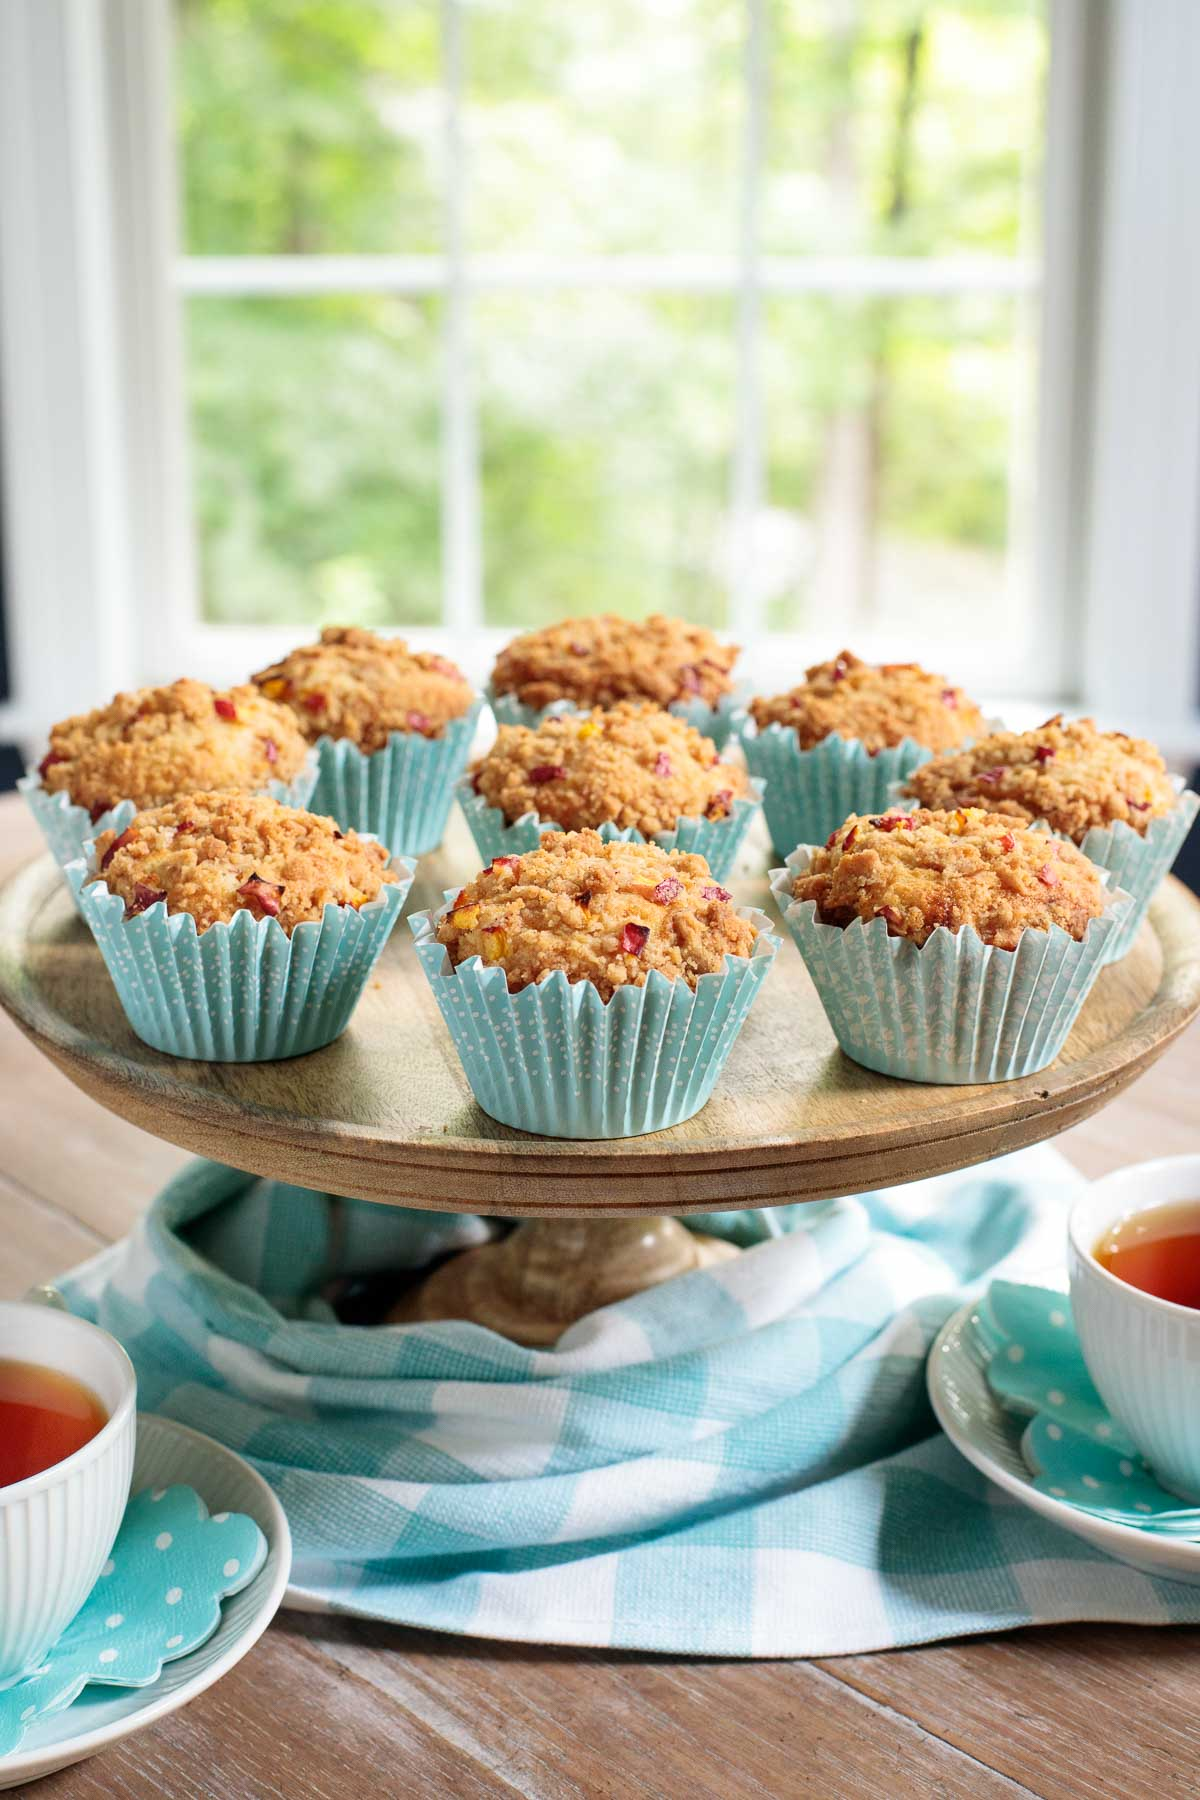 Vertical photo of a wooden cake stand filled with Easy Peach Crumble Muffins surrounded by cups of tea and a turquoise checkered cloth.